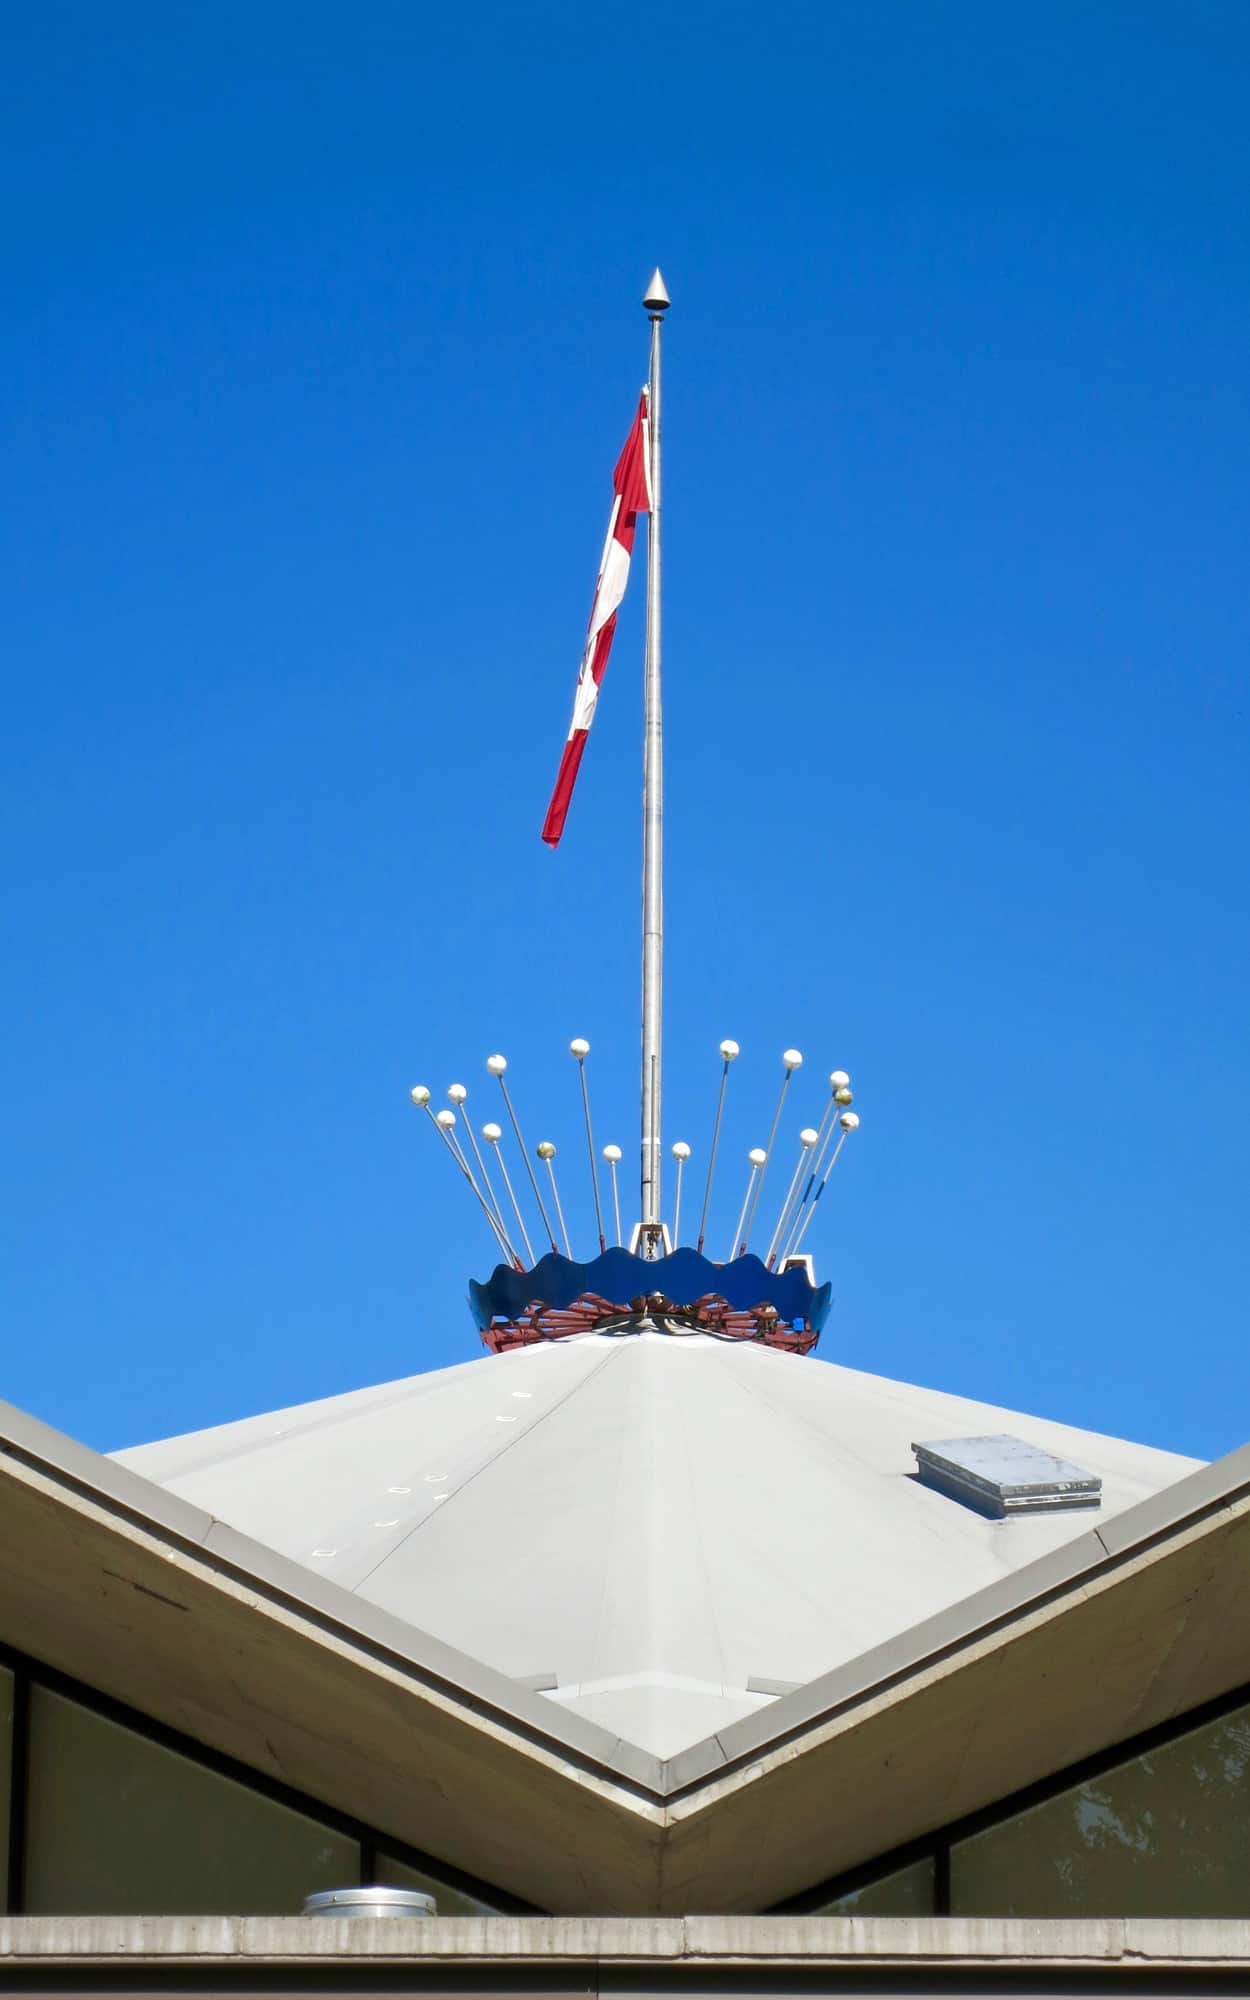 Roof-top flagpole and coronet finial